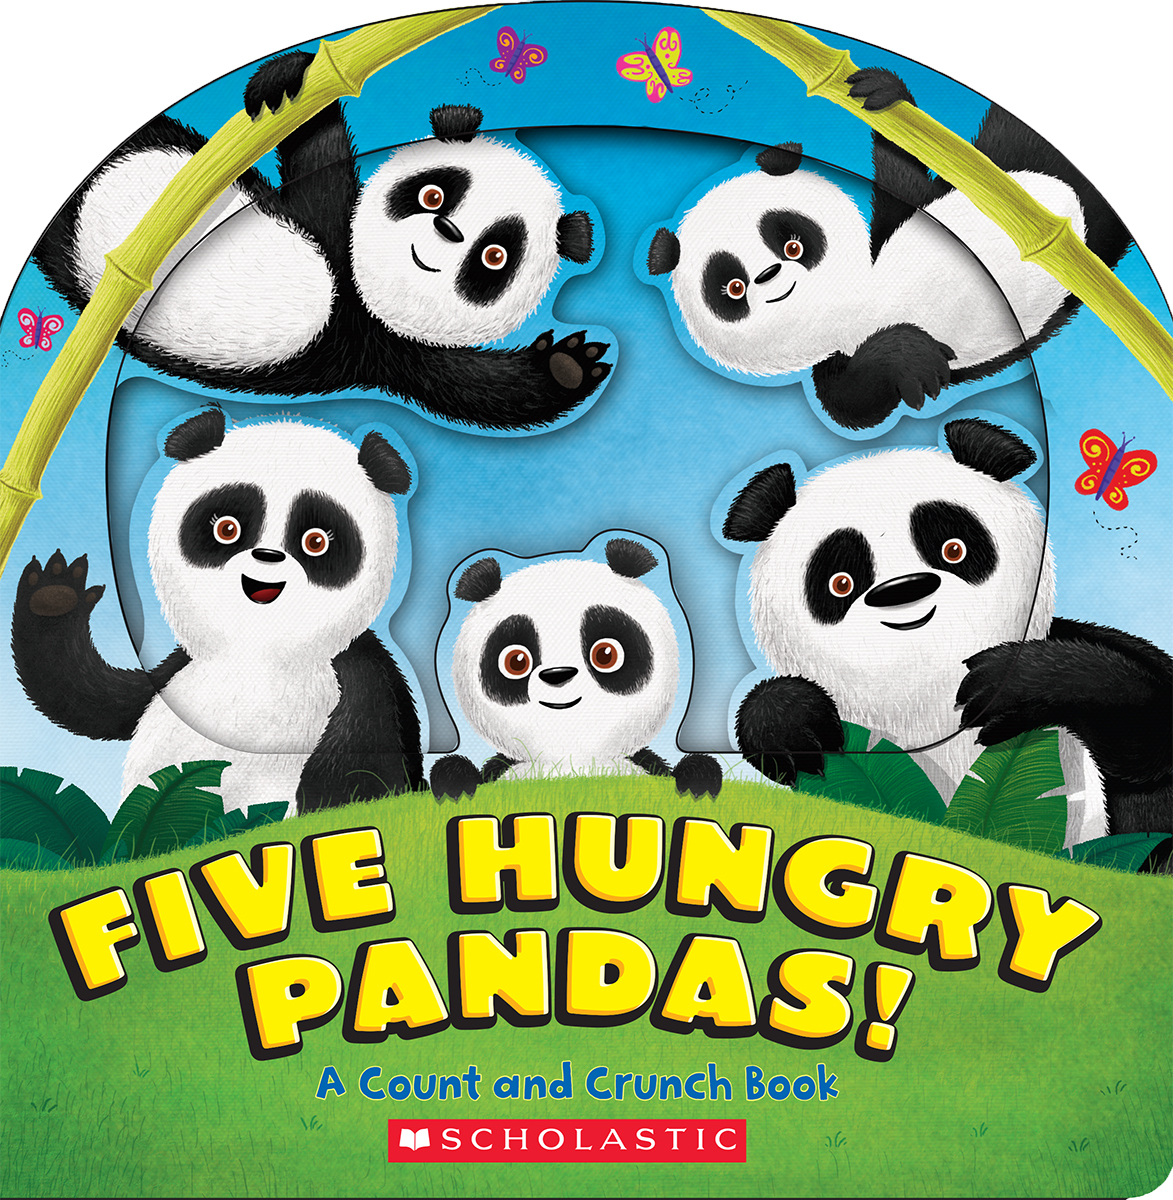 Sunday Story Time: Five Hungry Pandas! by Alexis Barad-Cutler